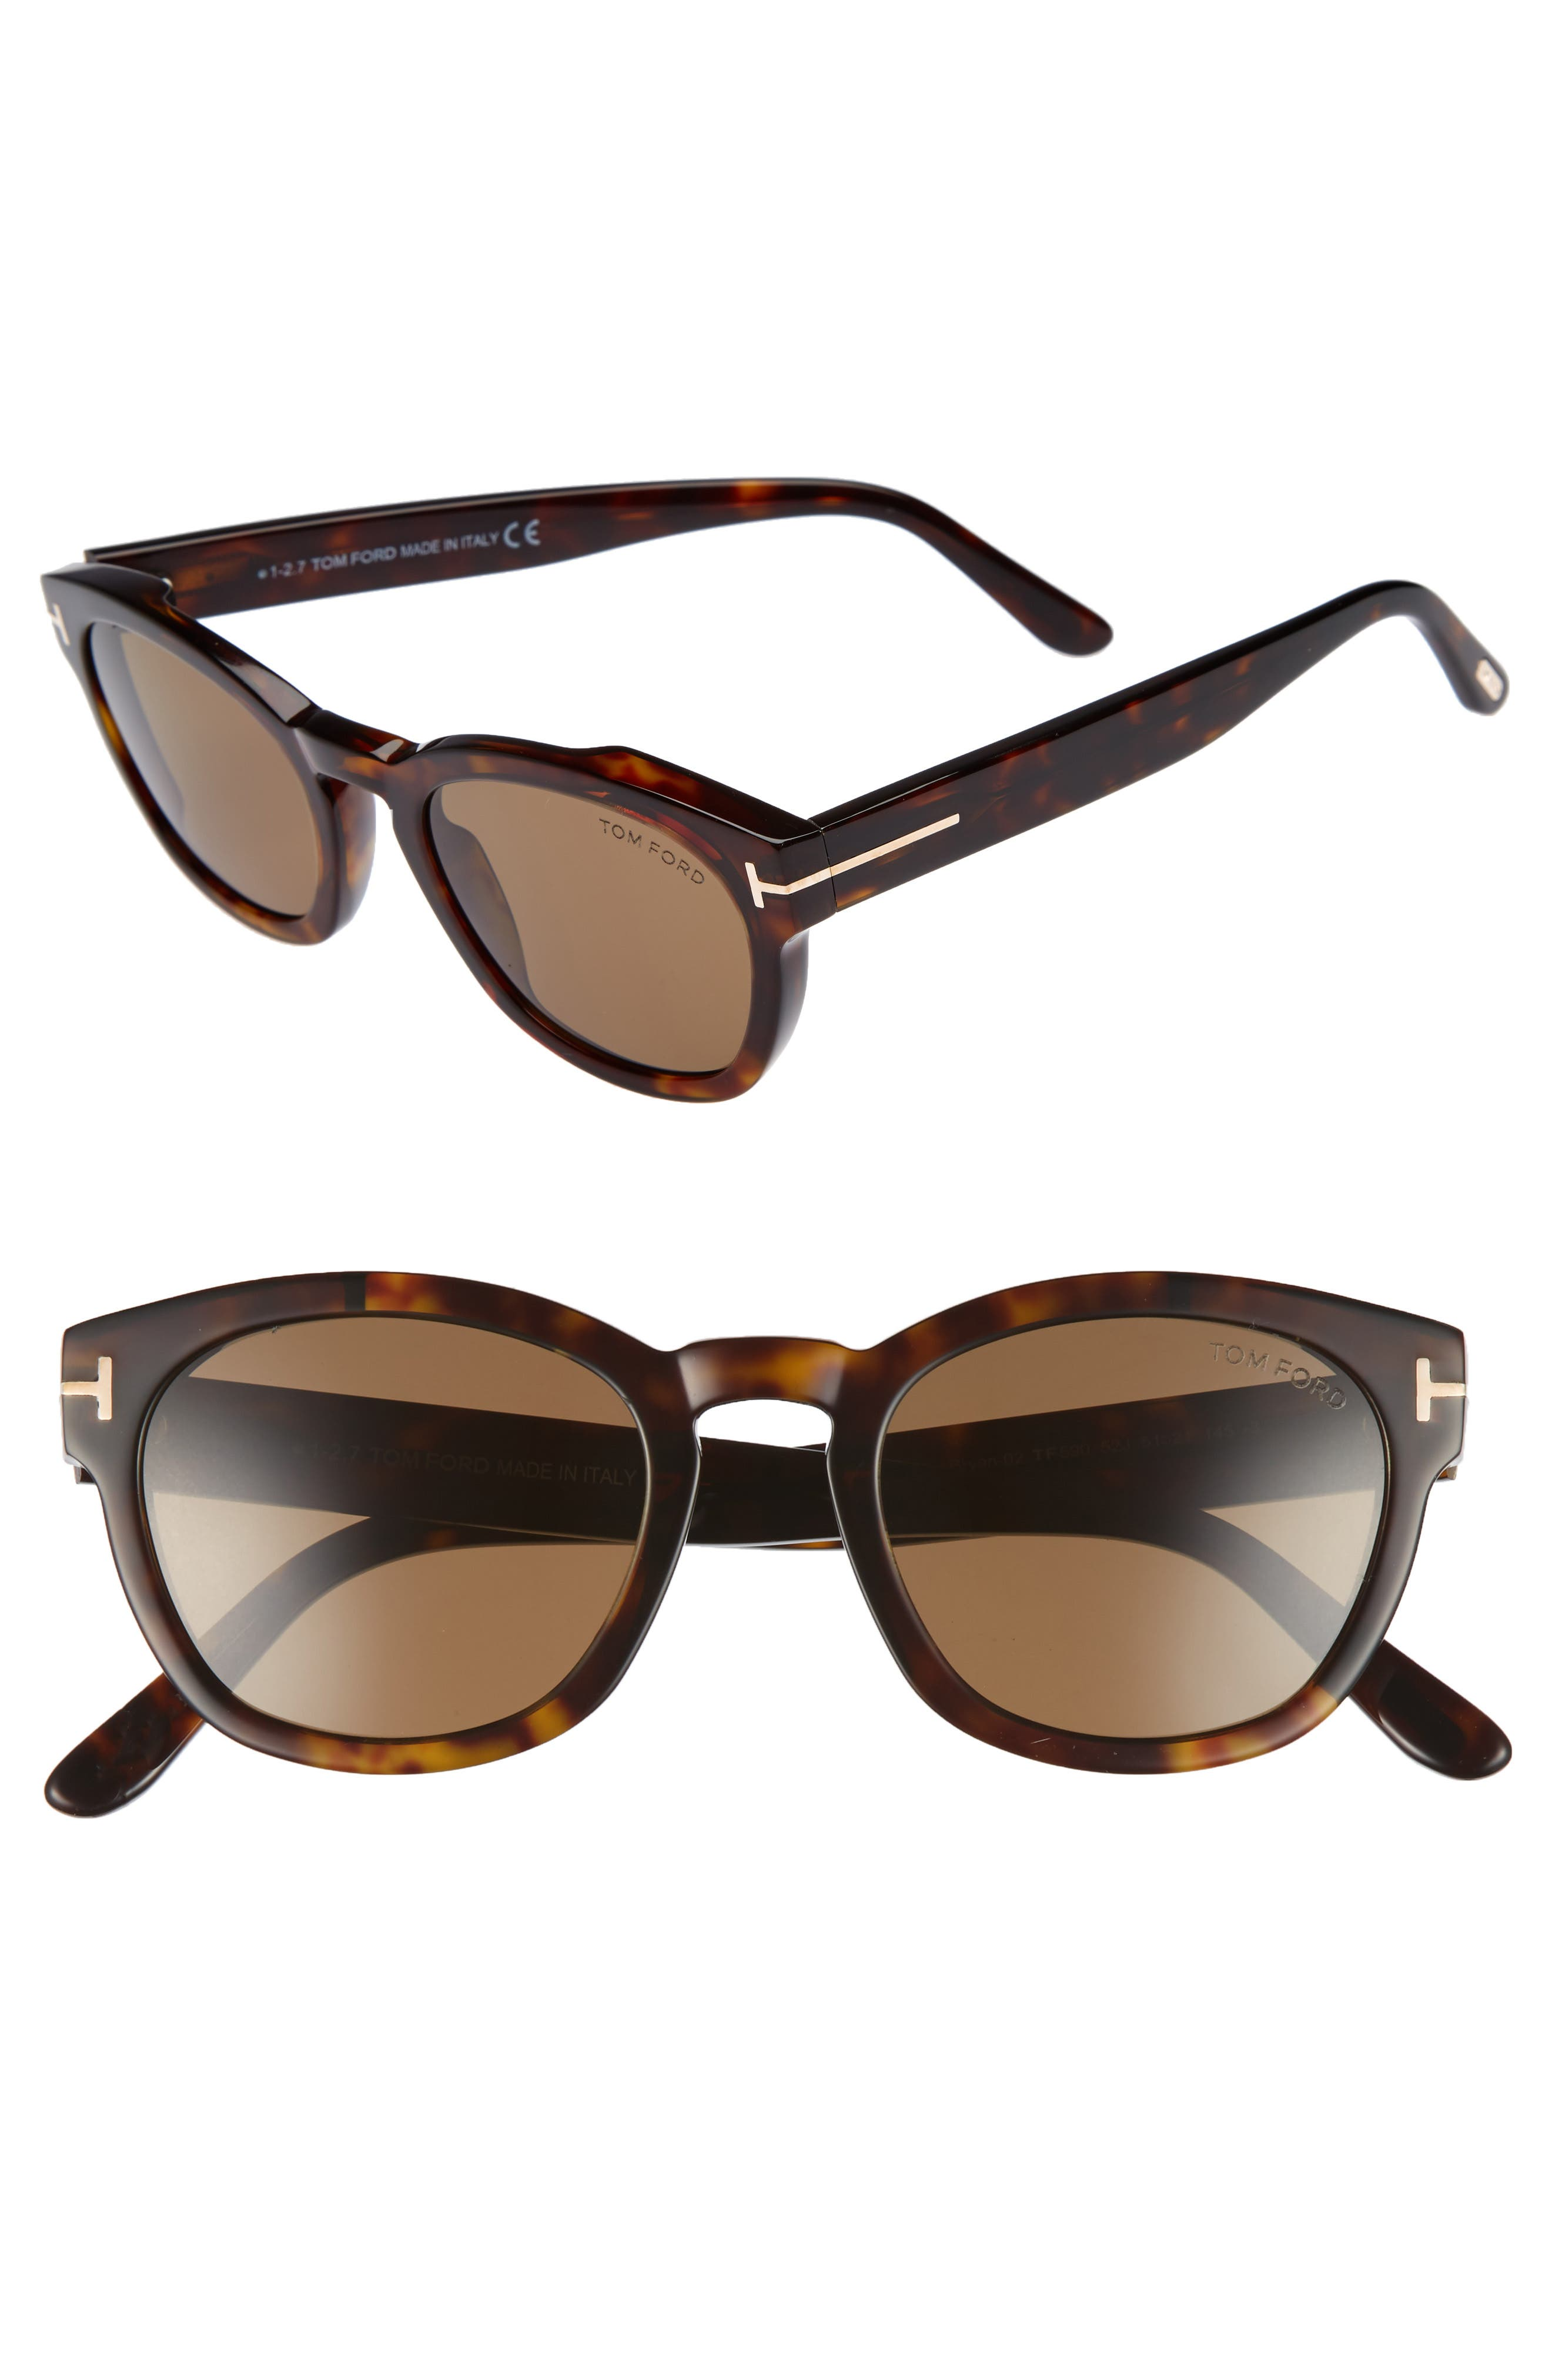 Bryan 51mm Sunglasses,                             Main thumbnail 1, color,                             Dark Havana/ Roviex